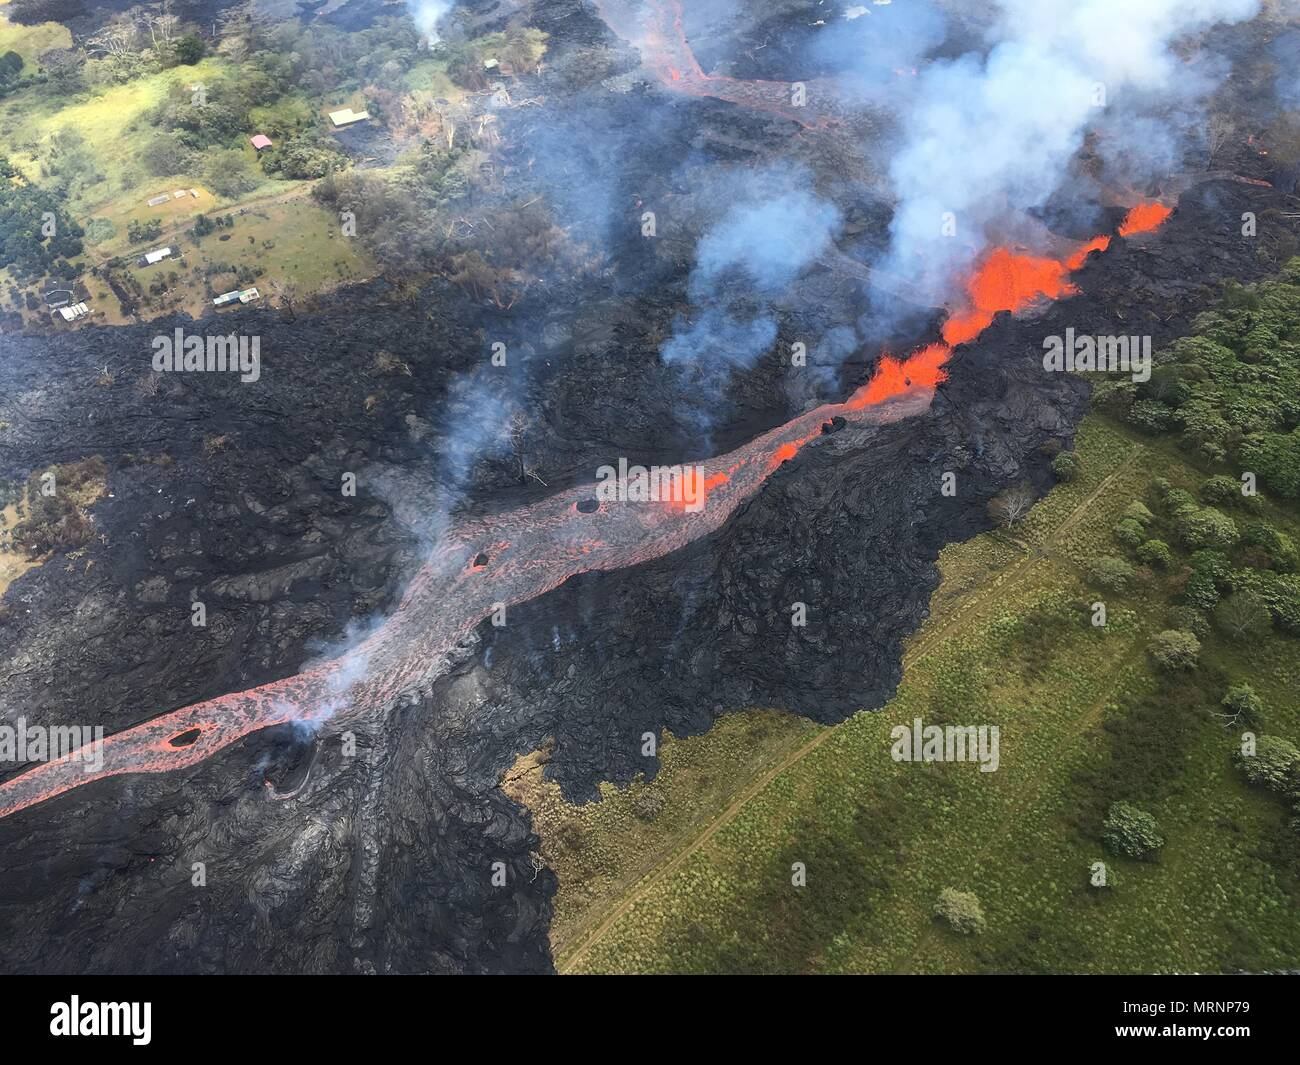 Channelized lava streams down fissure 20 in the East Rift Zone from the eruption of the Kilauea volcano May 19, 2018 in Pahoa, Hawaii. Stock Photo